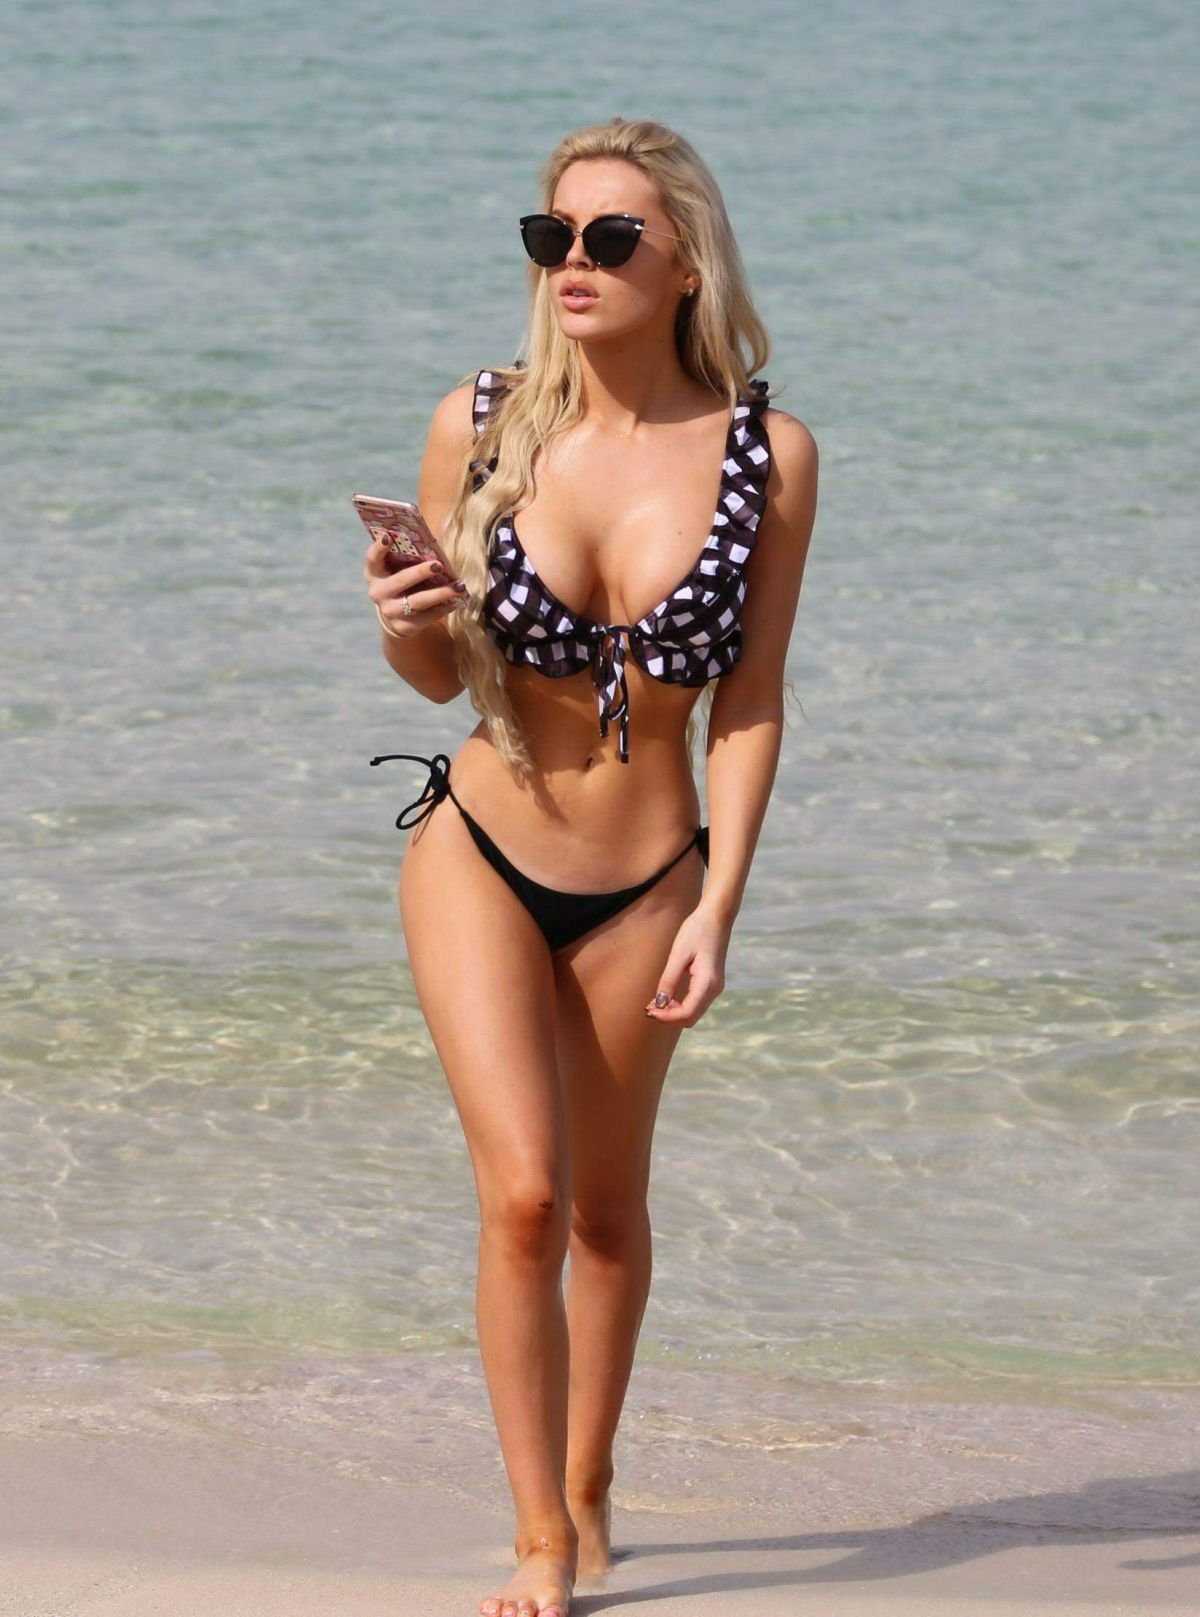 BETSY-BLUE ENGLISH in Bikini at a Beach in Dubai 01/21/2017